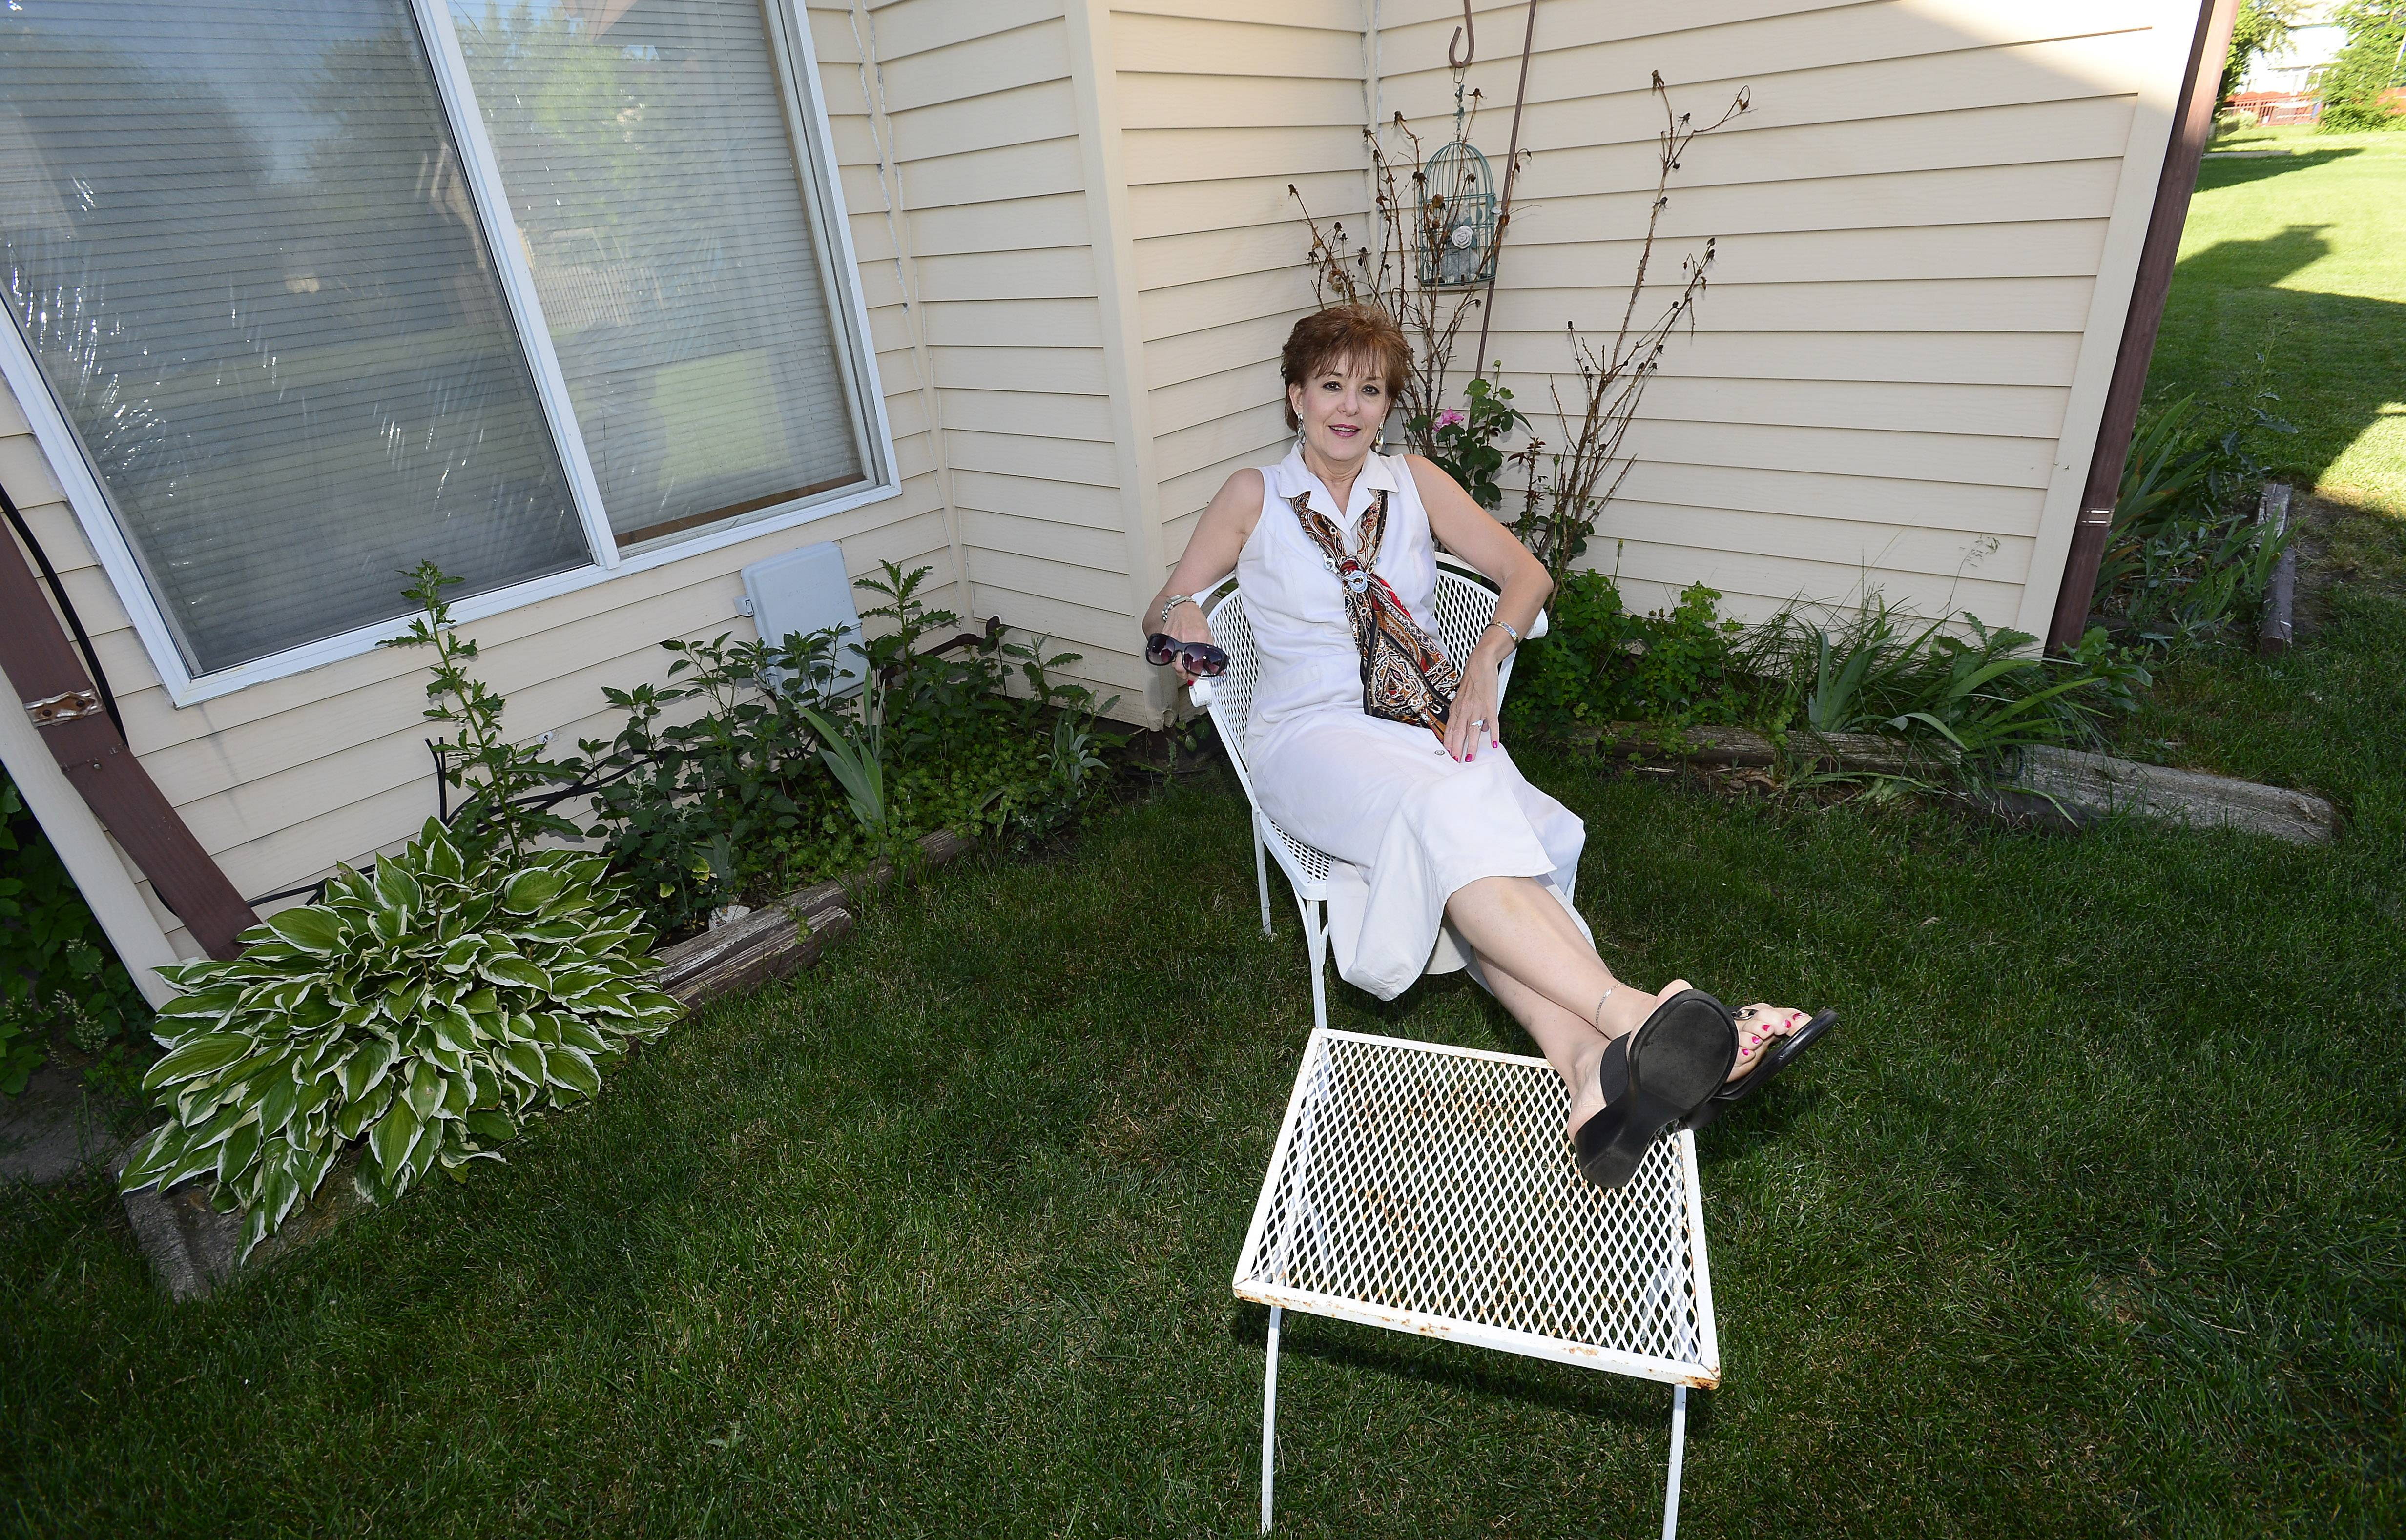 Kate Anderson of Hanover Park shows off her ugly backyard consisting of weeds, rotting beams and rusty patio furniture. Anderson won a $3,100 package including a Toro lawn mower and gift cards that will help her spuce up her landscaping and get some new furniture.